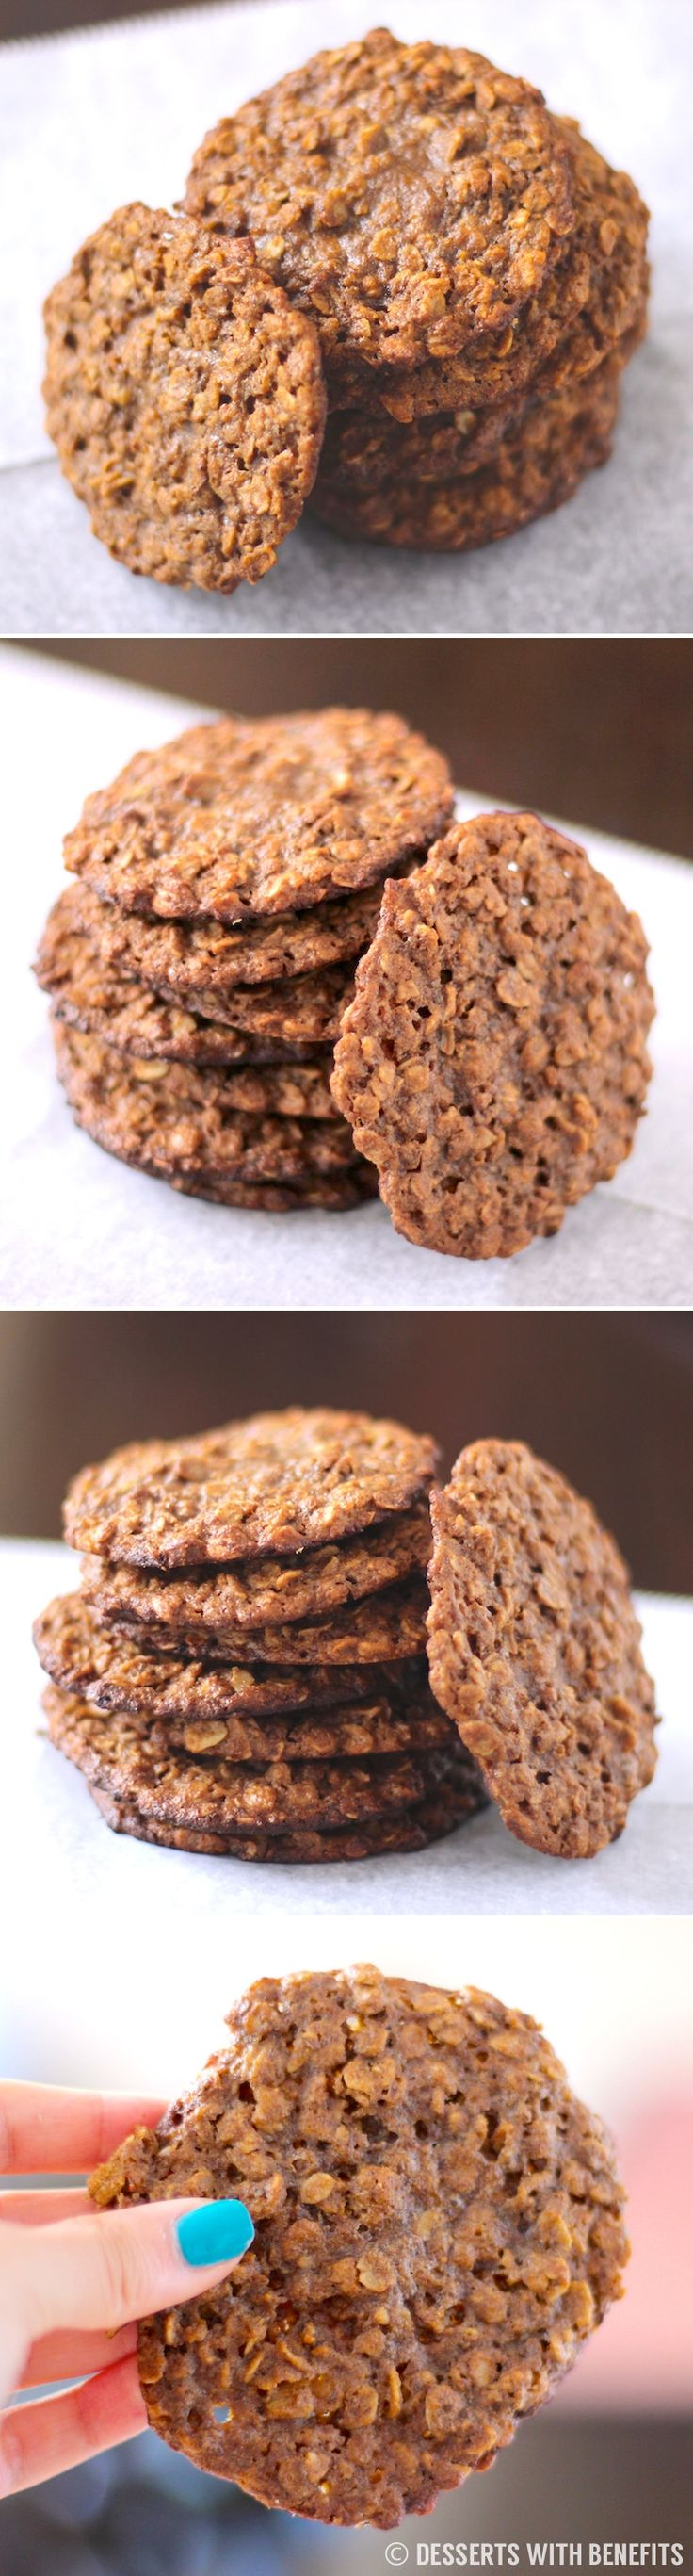 Secretly Healthy JUMBO Peanut Butter Oatmeal Cookies! Theyre huge, and theyre made without flour, butter and sugar. When it comes to cookies, bigger is better! [eggless, refined sugar free, gluten free, vegan]